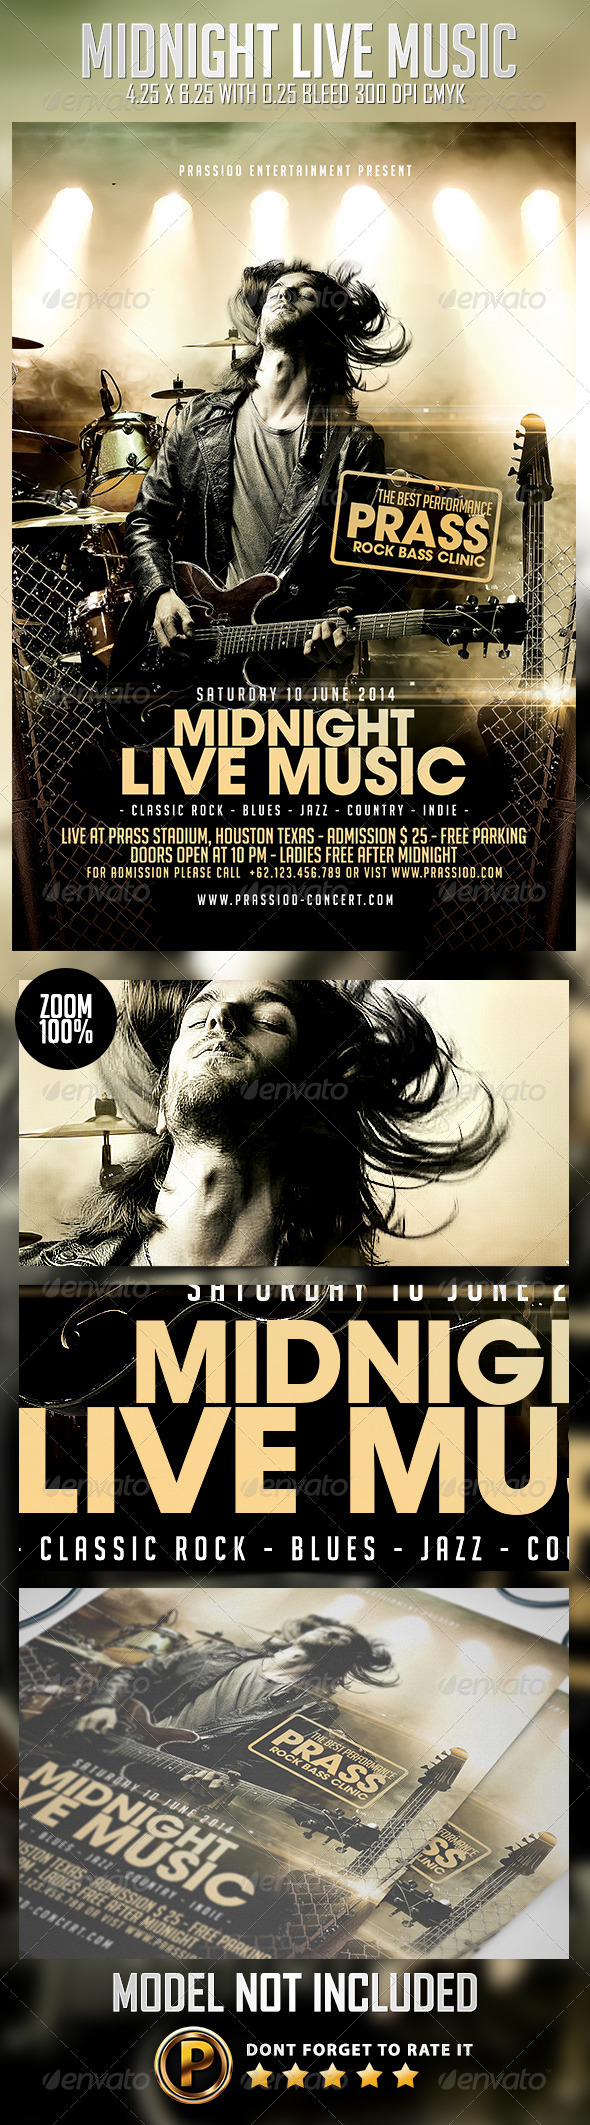 Midnight Live Music Flyer Template